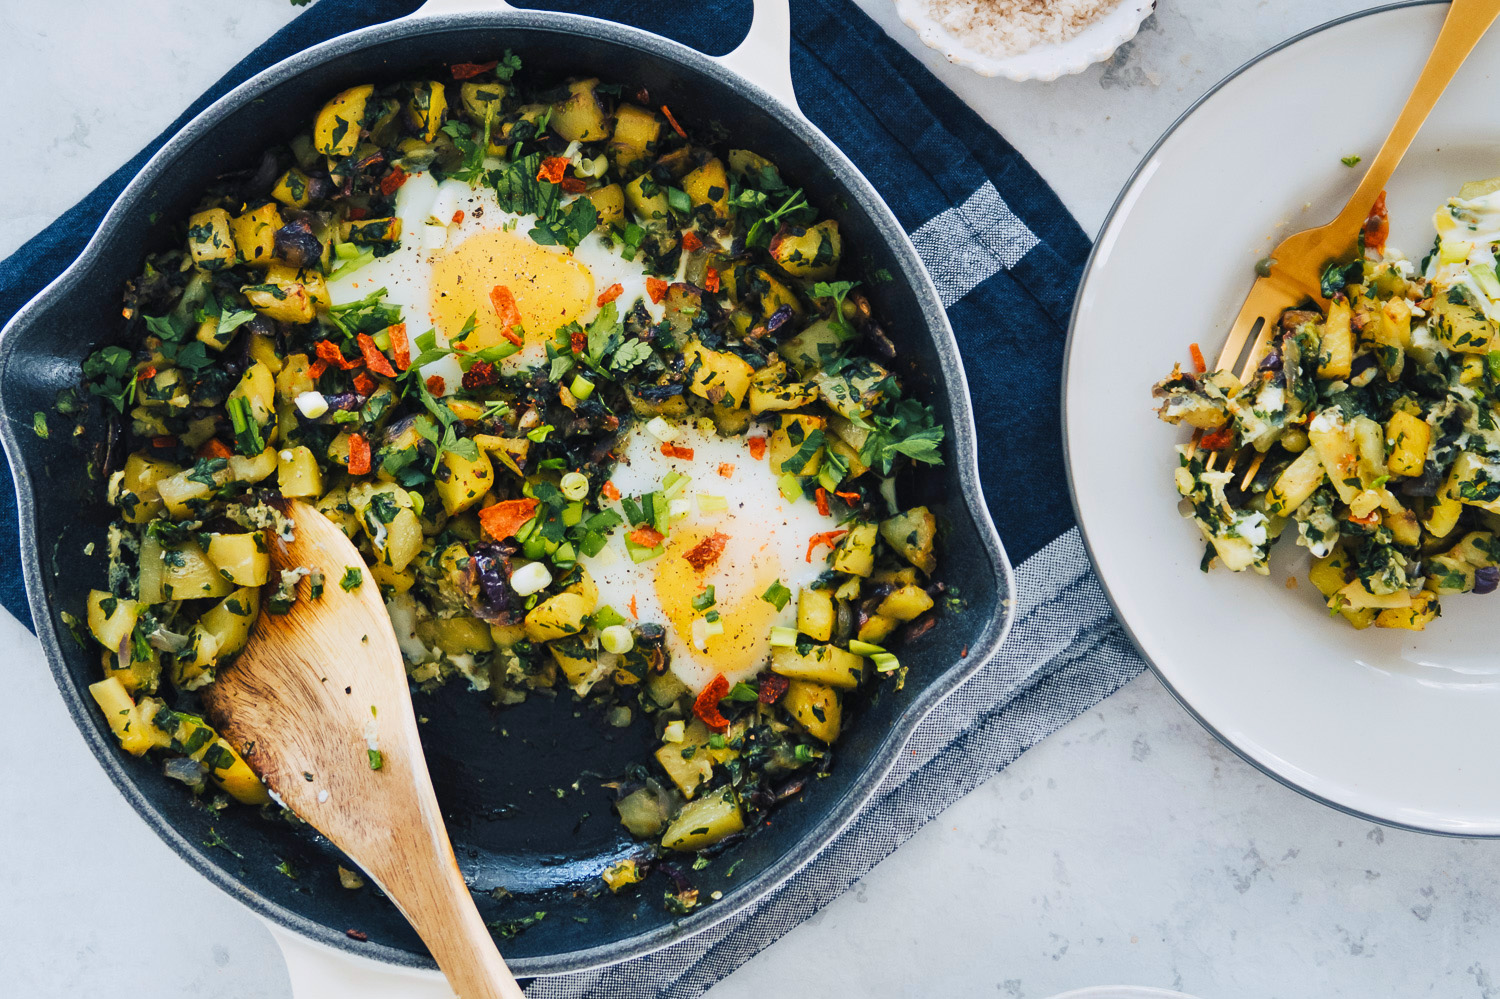 Potato Hash: an easy one-pan vegetarian traybake with crispy potatoes, spinach and set eggs with perfectly runny yolks